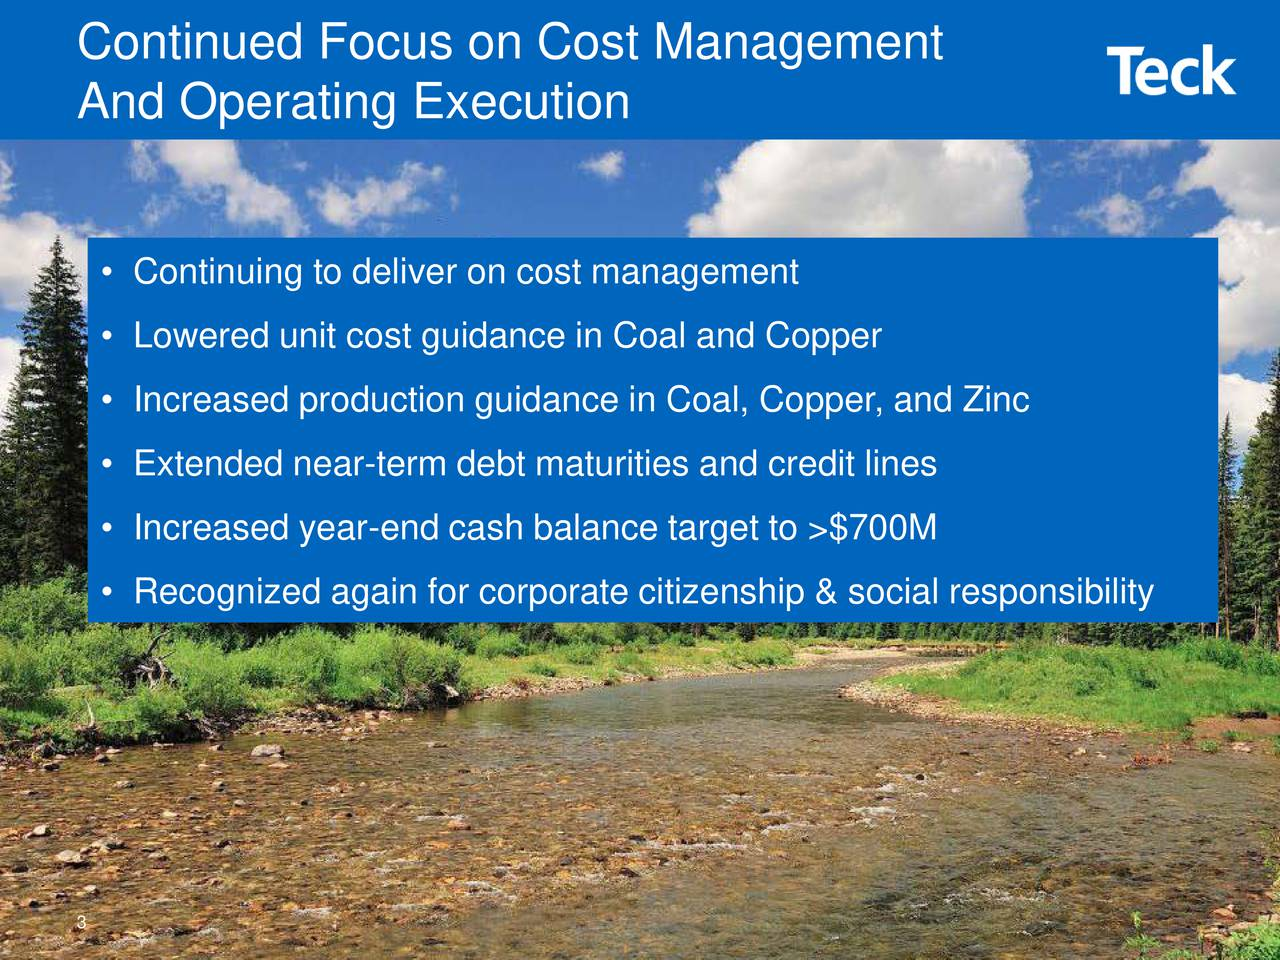 And Operating Execution Continuing to deliver on cost management Lowered unit cost guidance in Coal and Copper Increased production guidance in Coal, Copper, and Zinc Extended near-term debt maturities and credit lines Increased year-end cash balance target to >$700M Recognized again for corporate citizenship & social responsibility 3